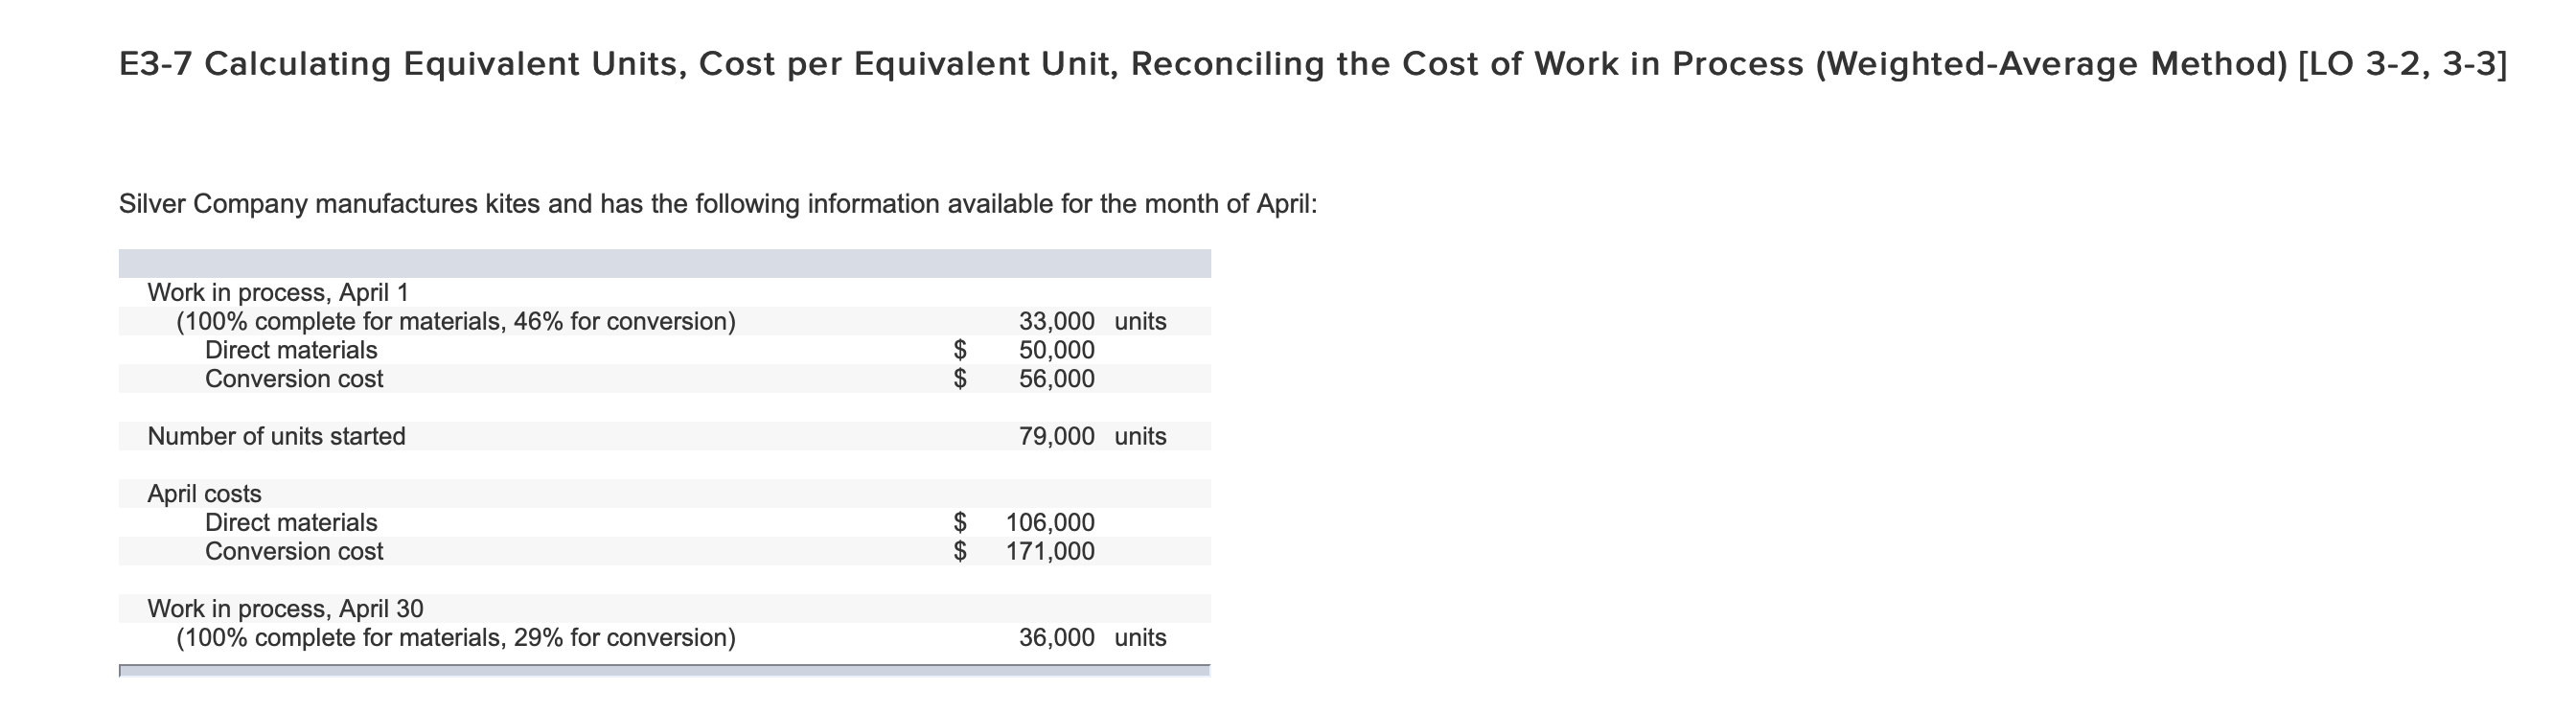 E3-7 Calculating Equivalent Units, Cost per Equivalent Unit, Reconciling the Cost of Work in Process (Weighted-Average Method) [LO 3-2, 3-3] Silver Company manufactures kites and has the following information available for the month of April: Work in process, April 1 (100% complete for materials, 46% for conversion) Direct materials 33,000 units 50,000 56,000 Conversion cost $ Number of units started 79,000 units April costs Direct materials 106,000 171,000 Conversion cost Work in process, April 30 (100% complete for materials, 29% for conversion) 36,000 units EA CA